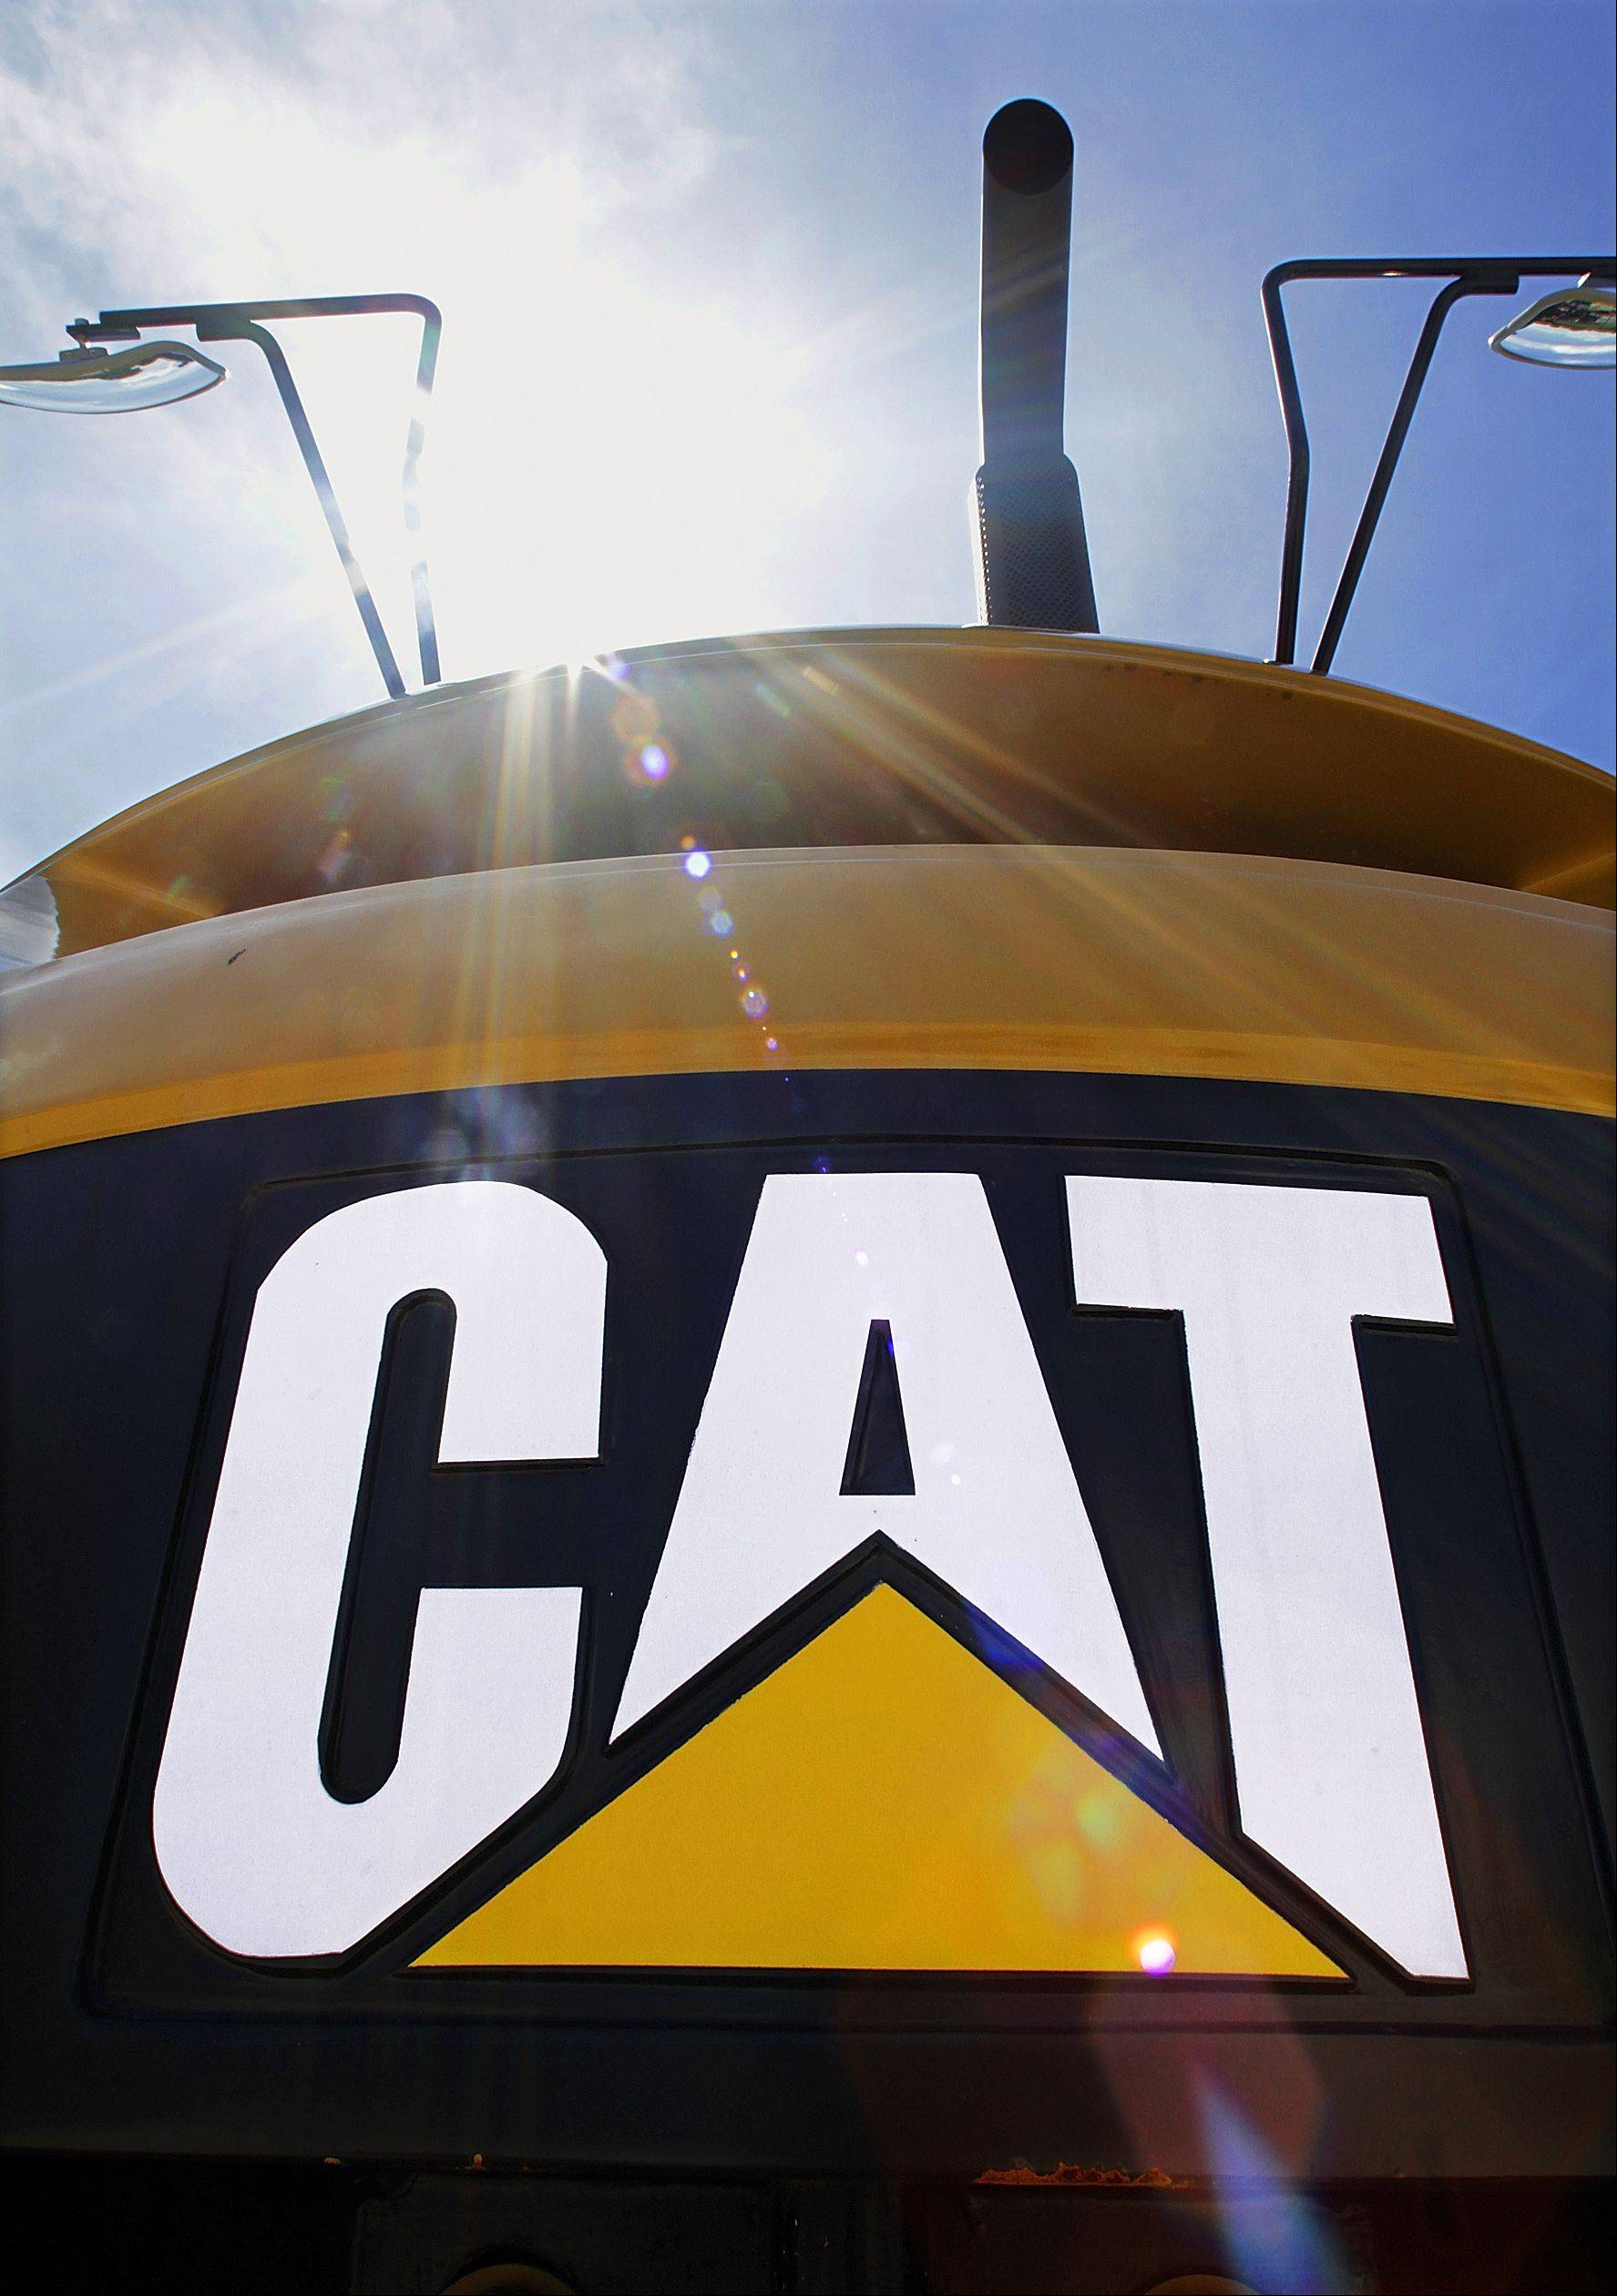 Slowdowns in mining are weighing on the stock price of heavy machinery manufacturer Caterpillar.